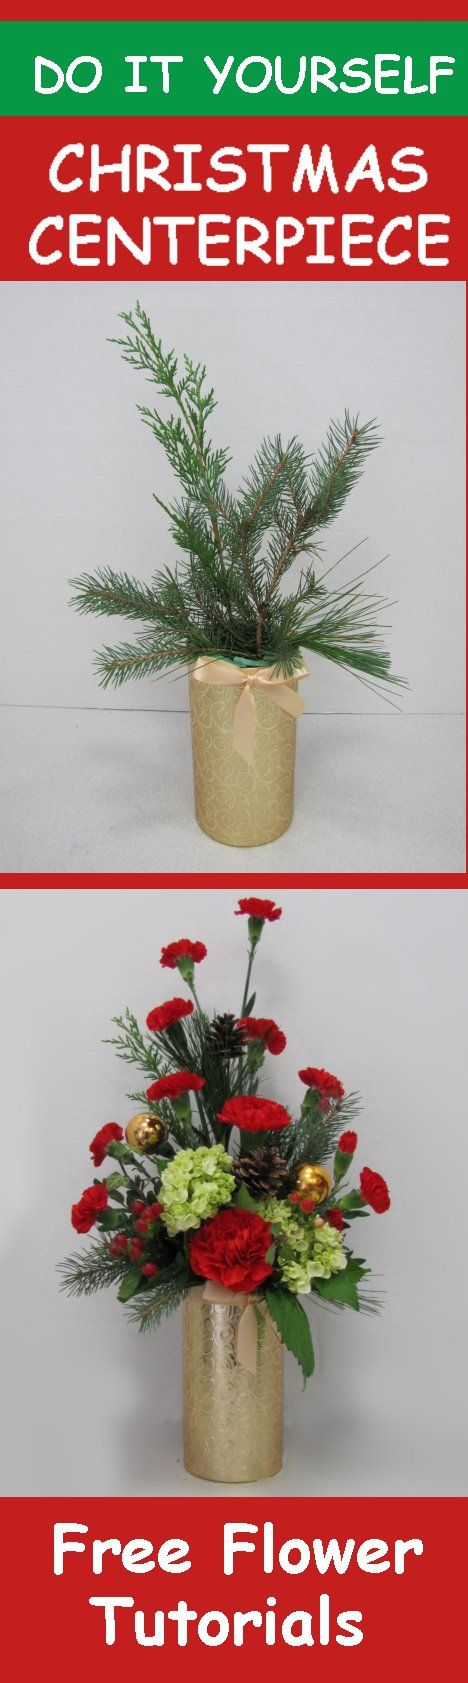 How to make christmas centerpieces - Learn How To Make Your Own Christmas Centerpieces Free Design Tutorials